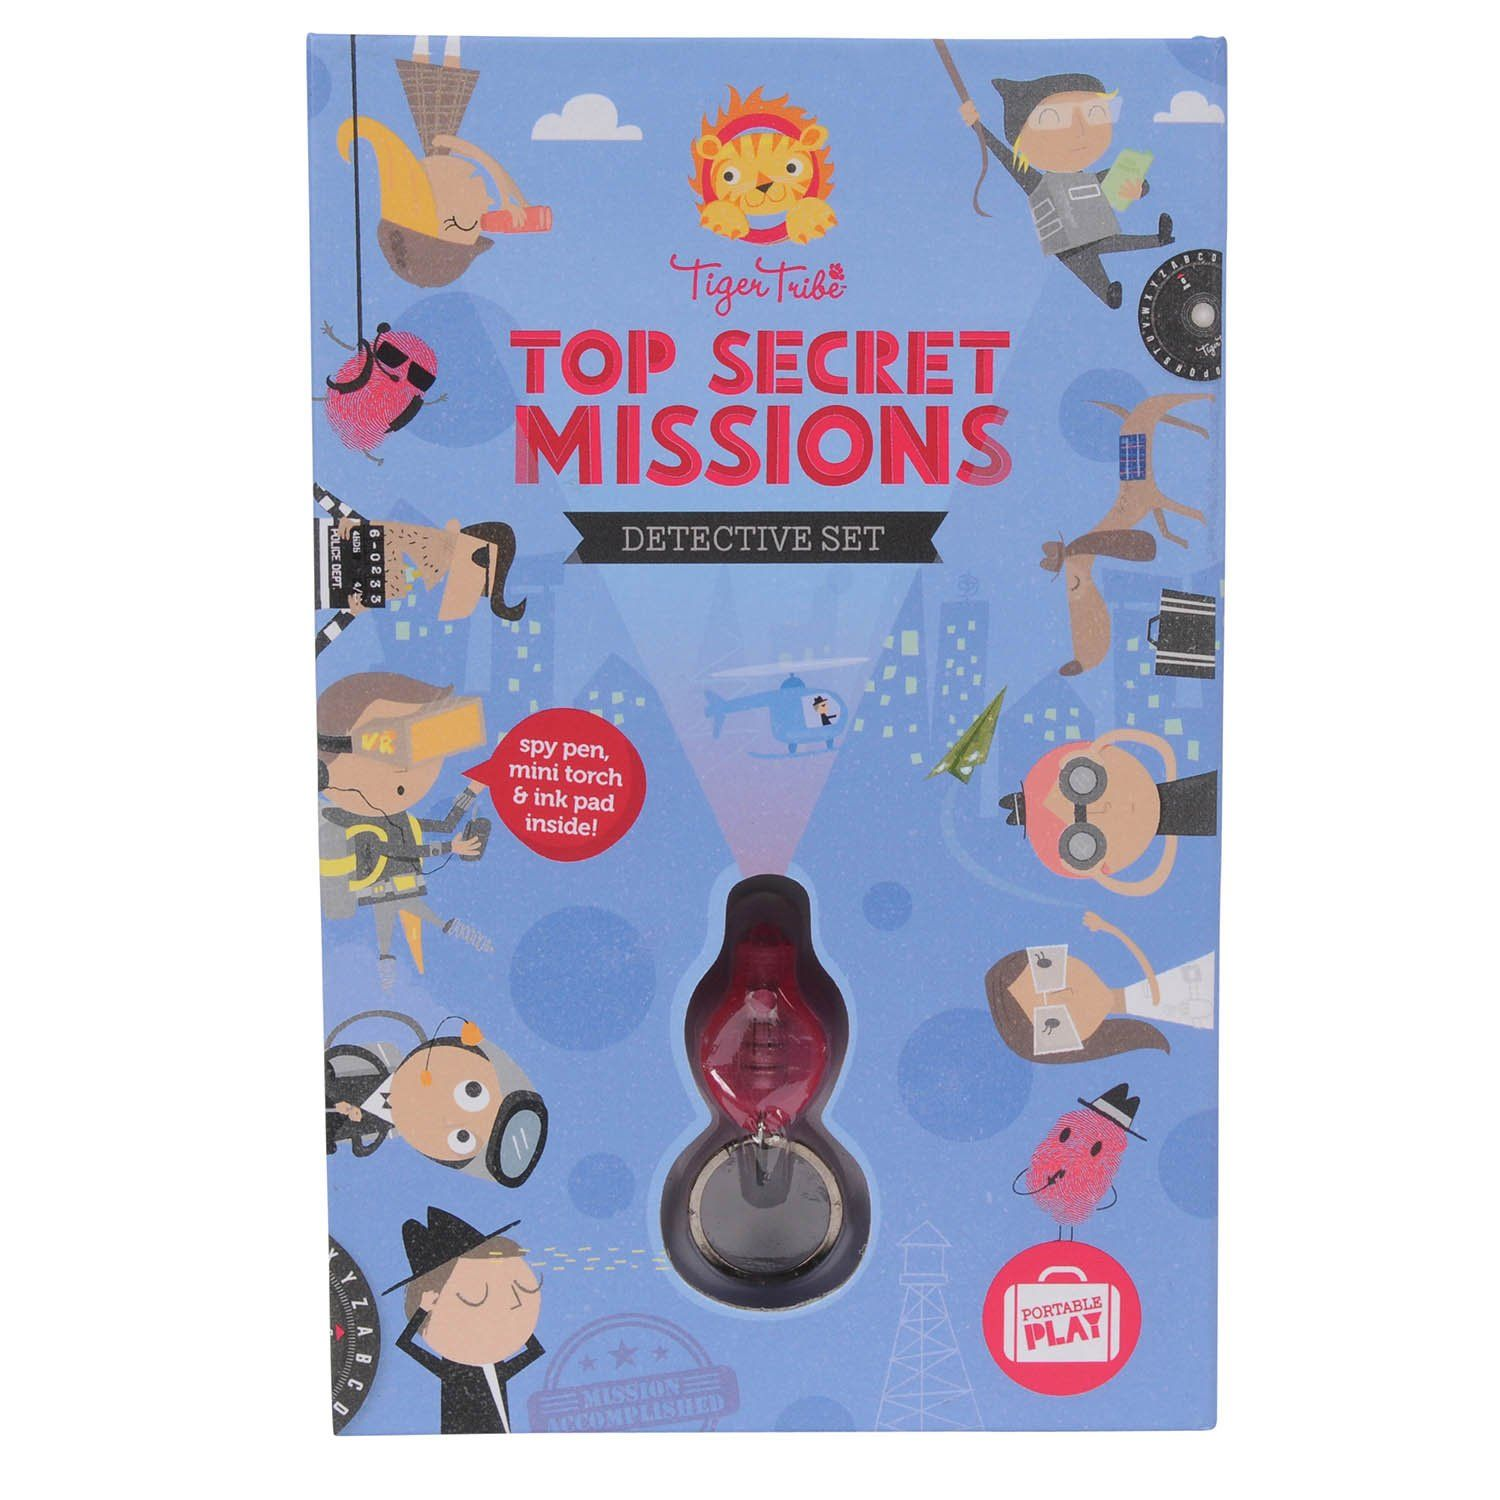 Top Secret Missions (Detective Set)